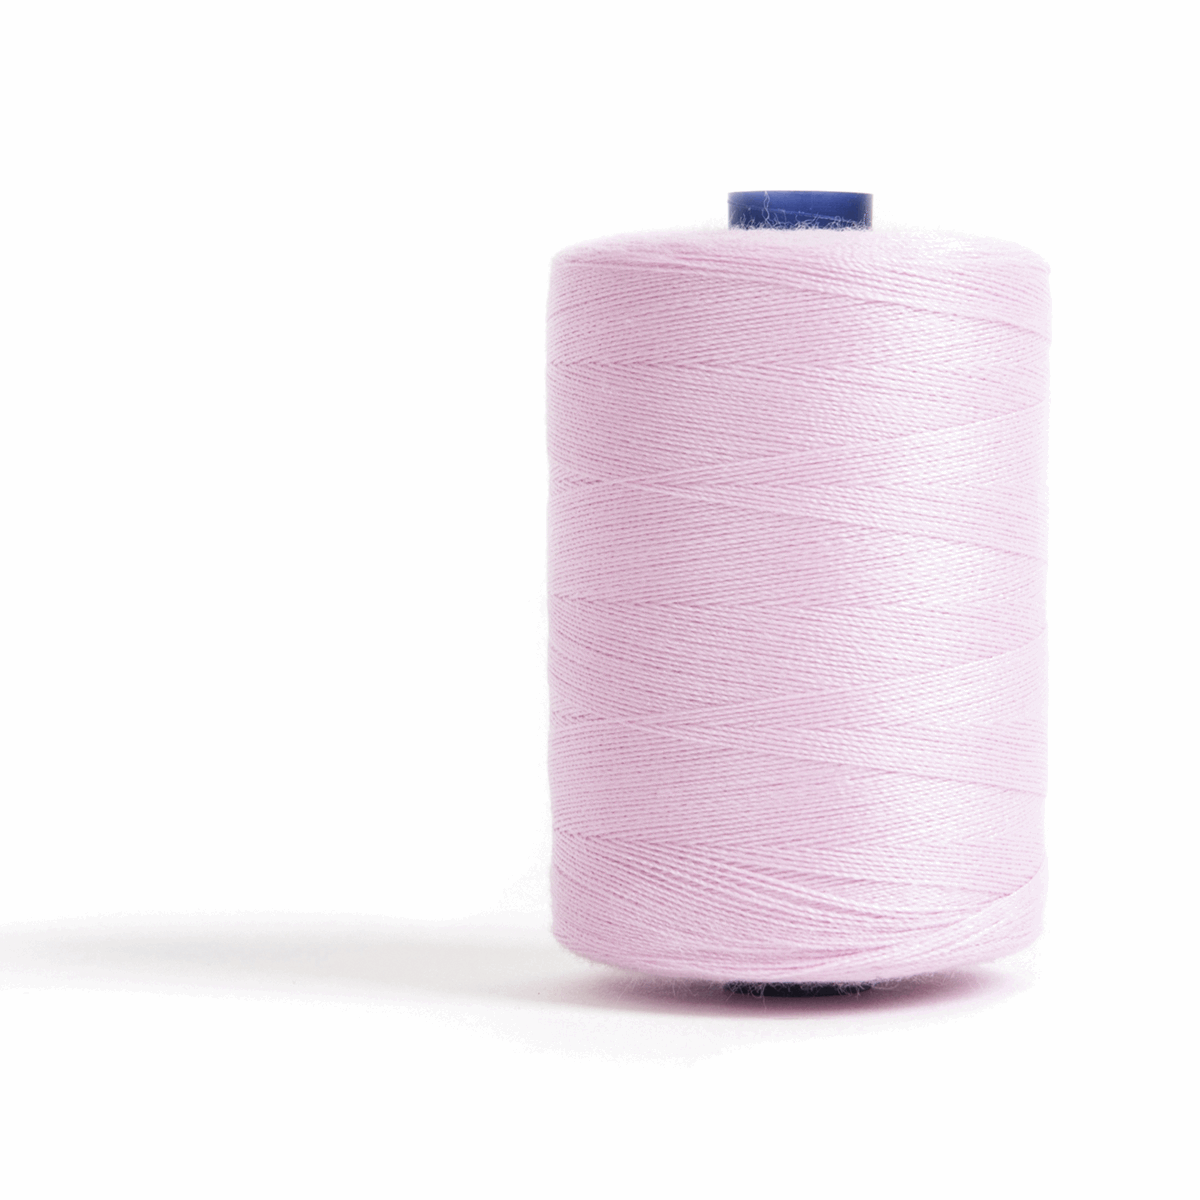 Thread 1000m Extra Large - Pink - for Sewing and Overlocking